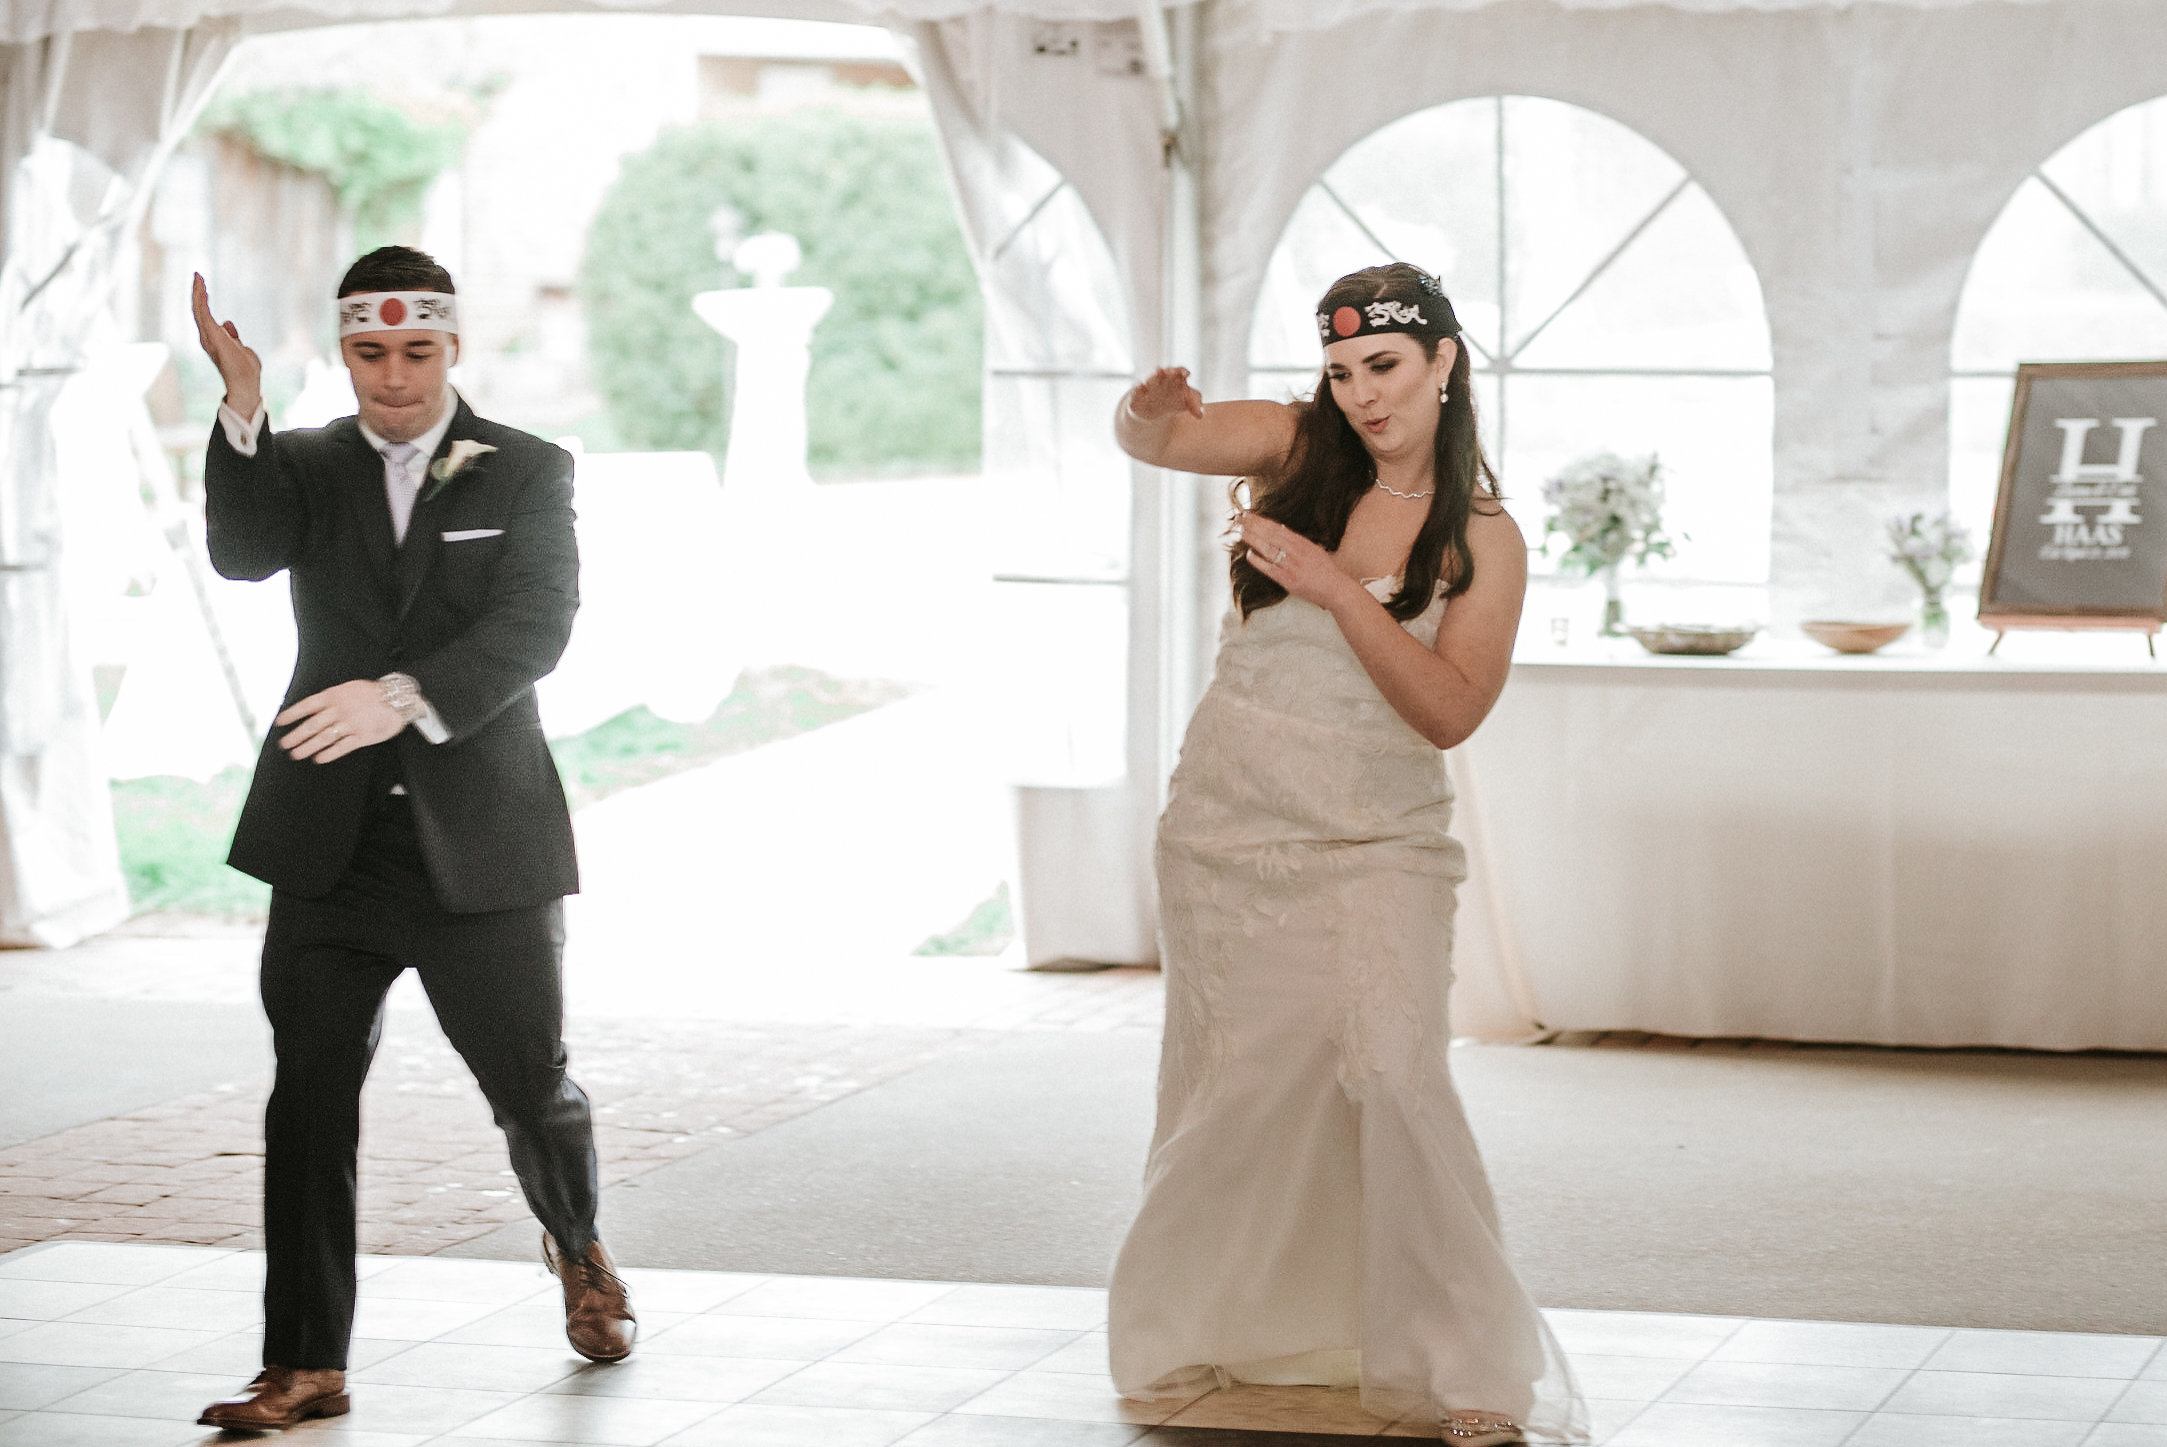 Bride and groom dance routine